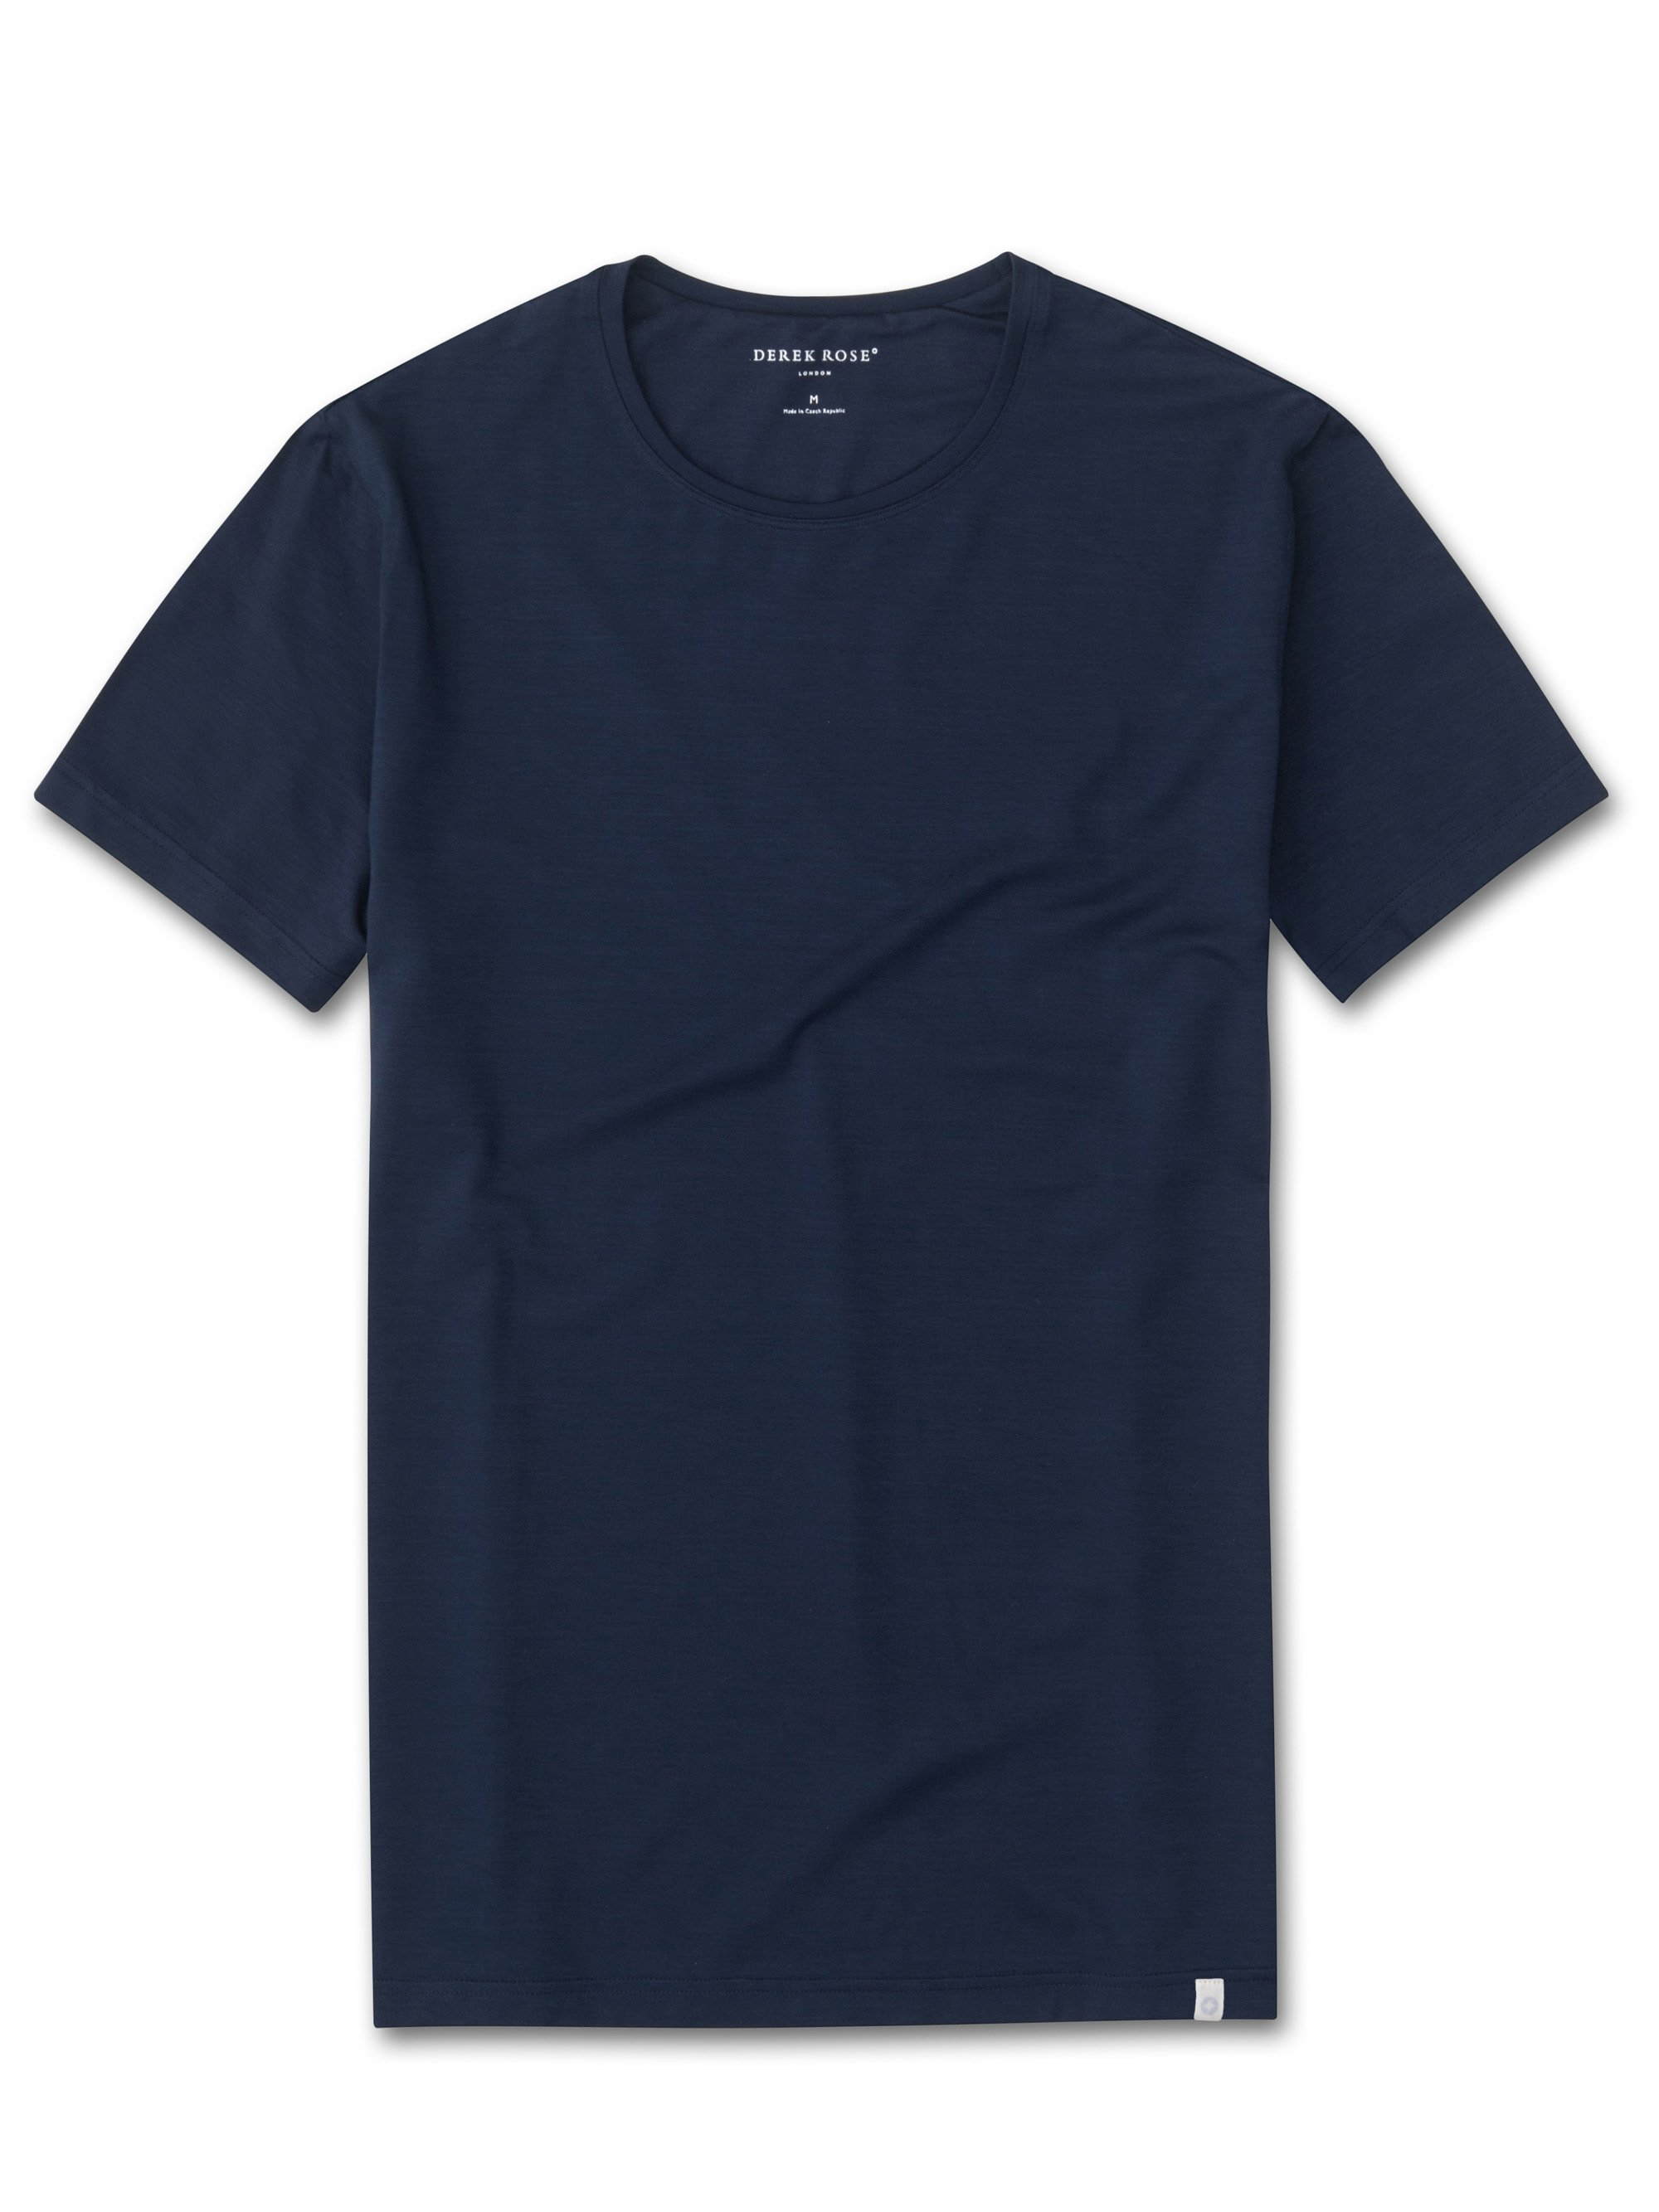 Men's Short Sleeve T-Shirt Basel Micro Modal Stretch Navy